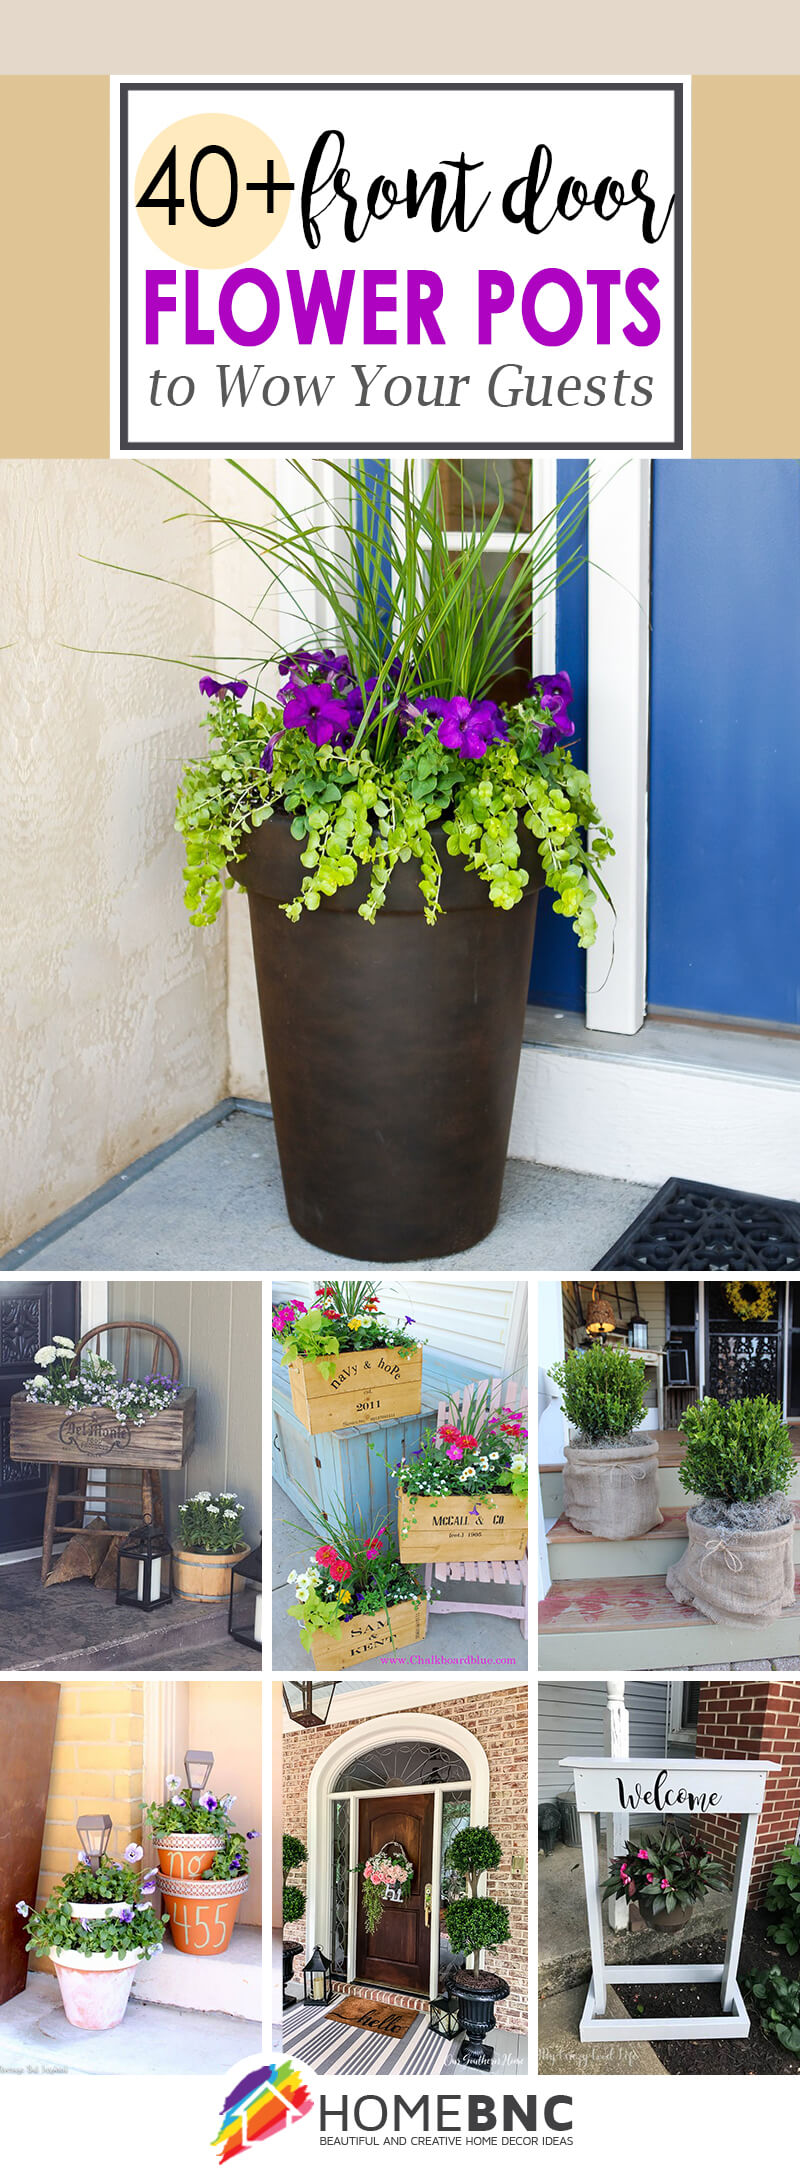 40 Best Front Door Flower Pots Ideas And Designs For 2021